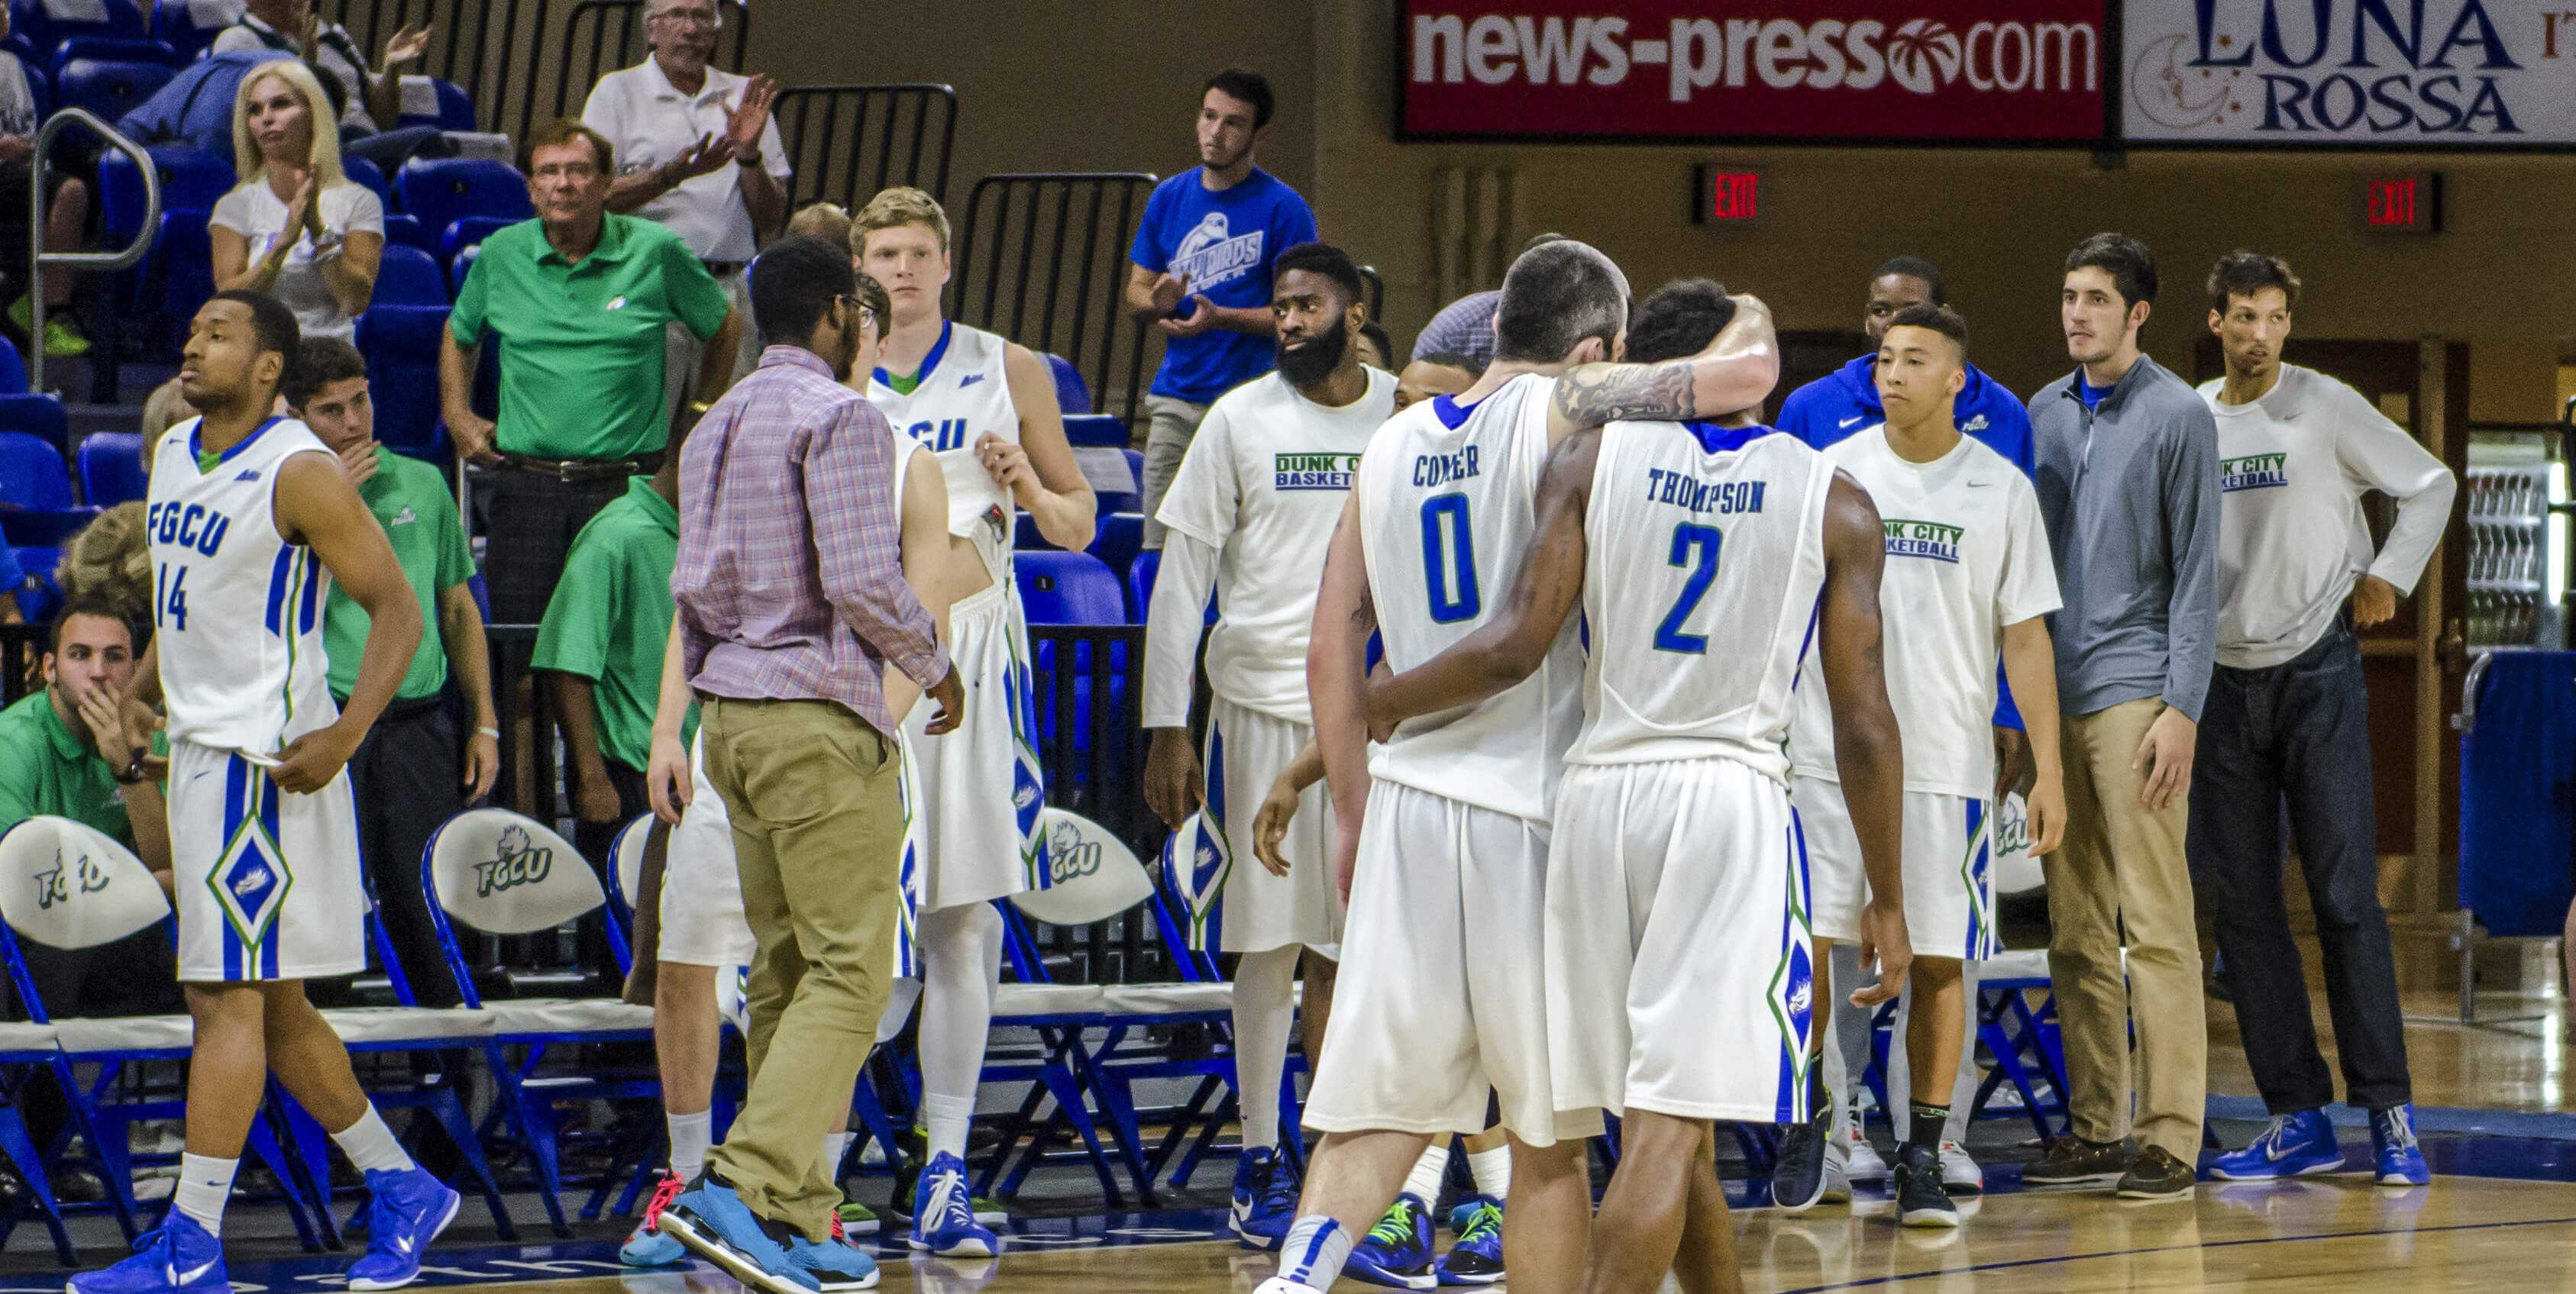 Seniors' careers end with loss to Corpus Christi in CIT